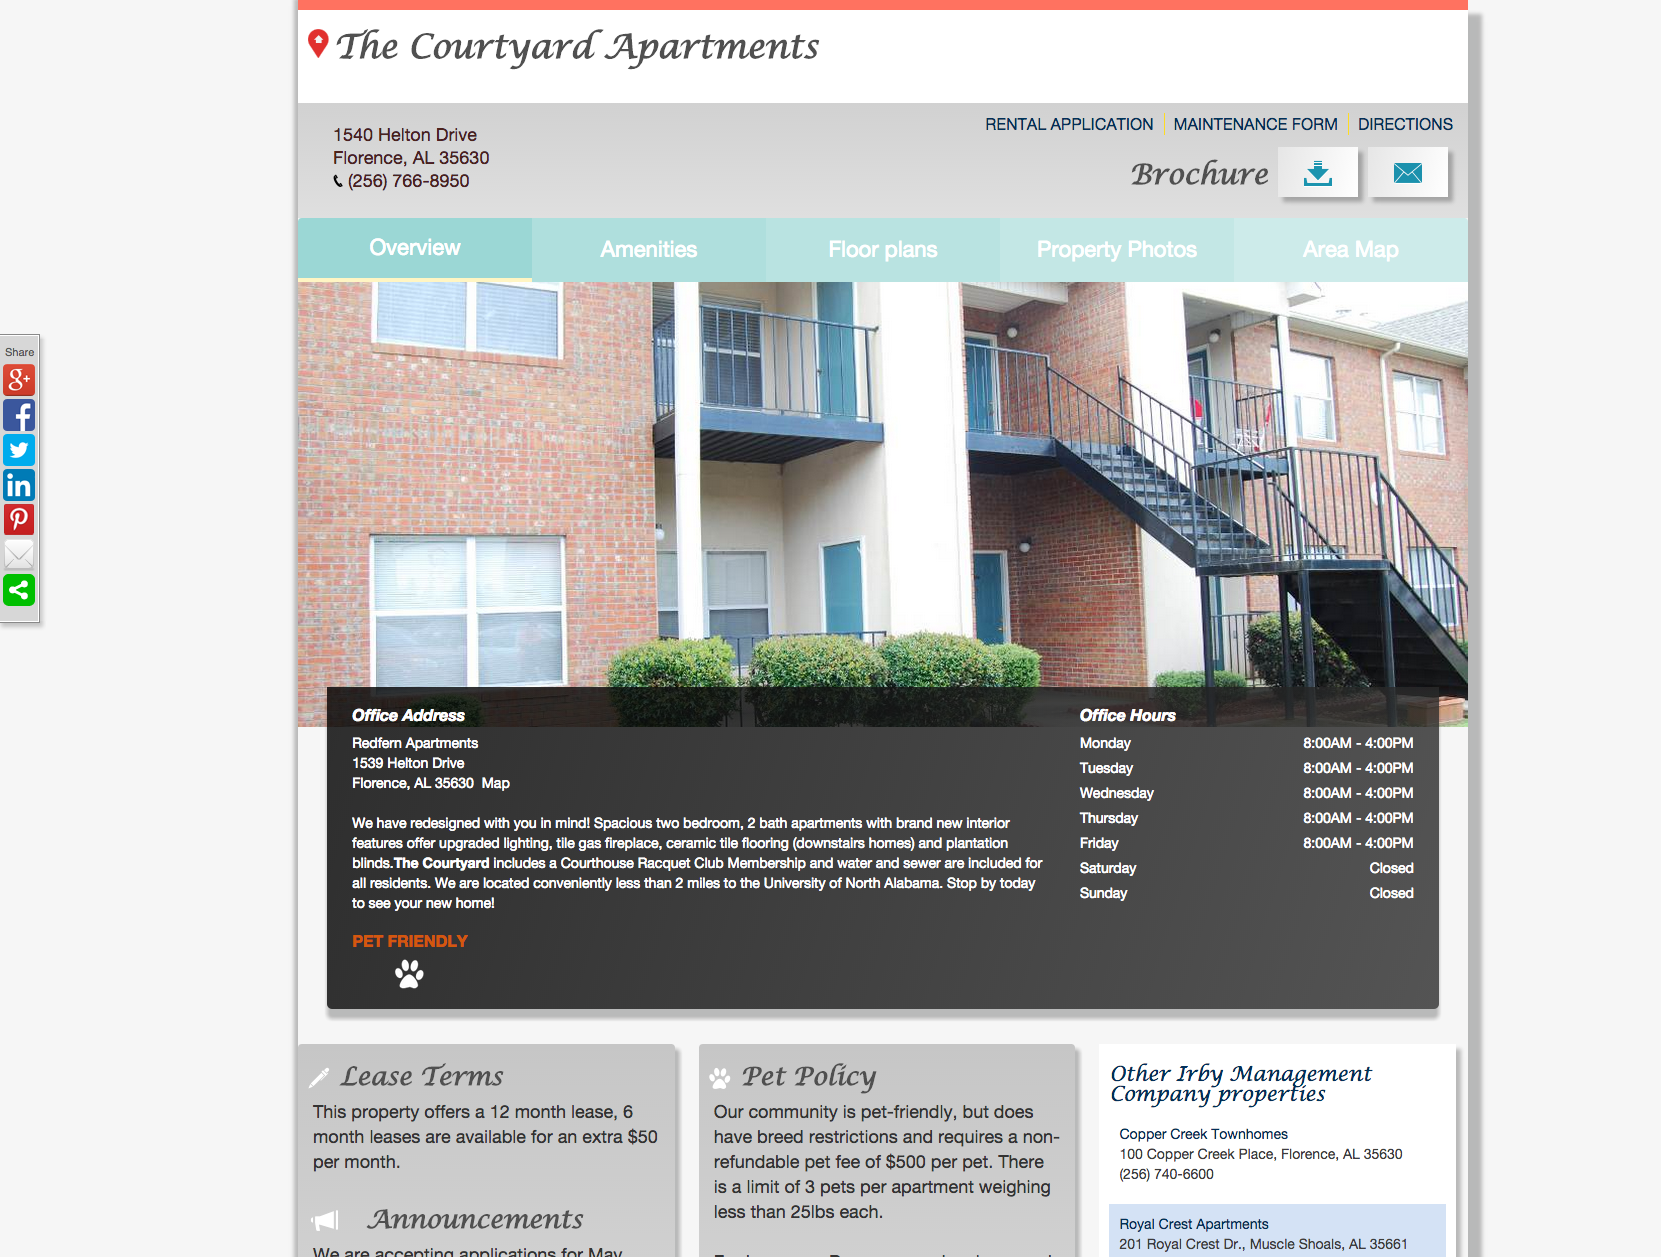 The Courtyard Apartments - Apartment Community Web Presence ...